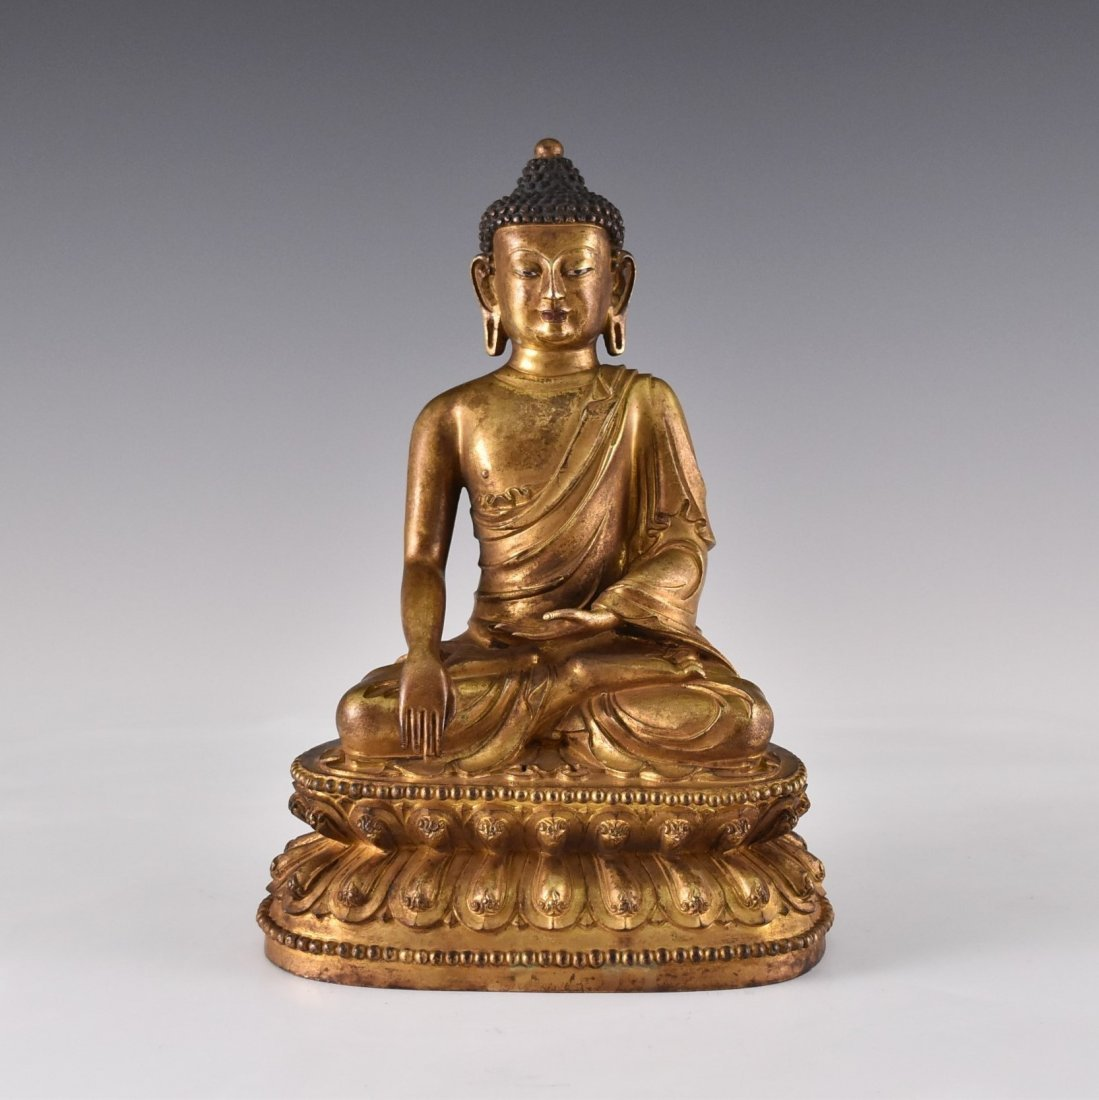 YONGLE MARK, GILT BRONZE FIGURE OF SAKYAMUNI BUDDHA